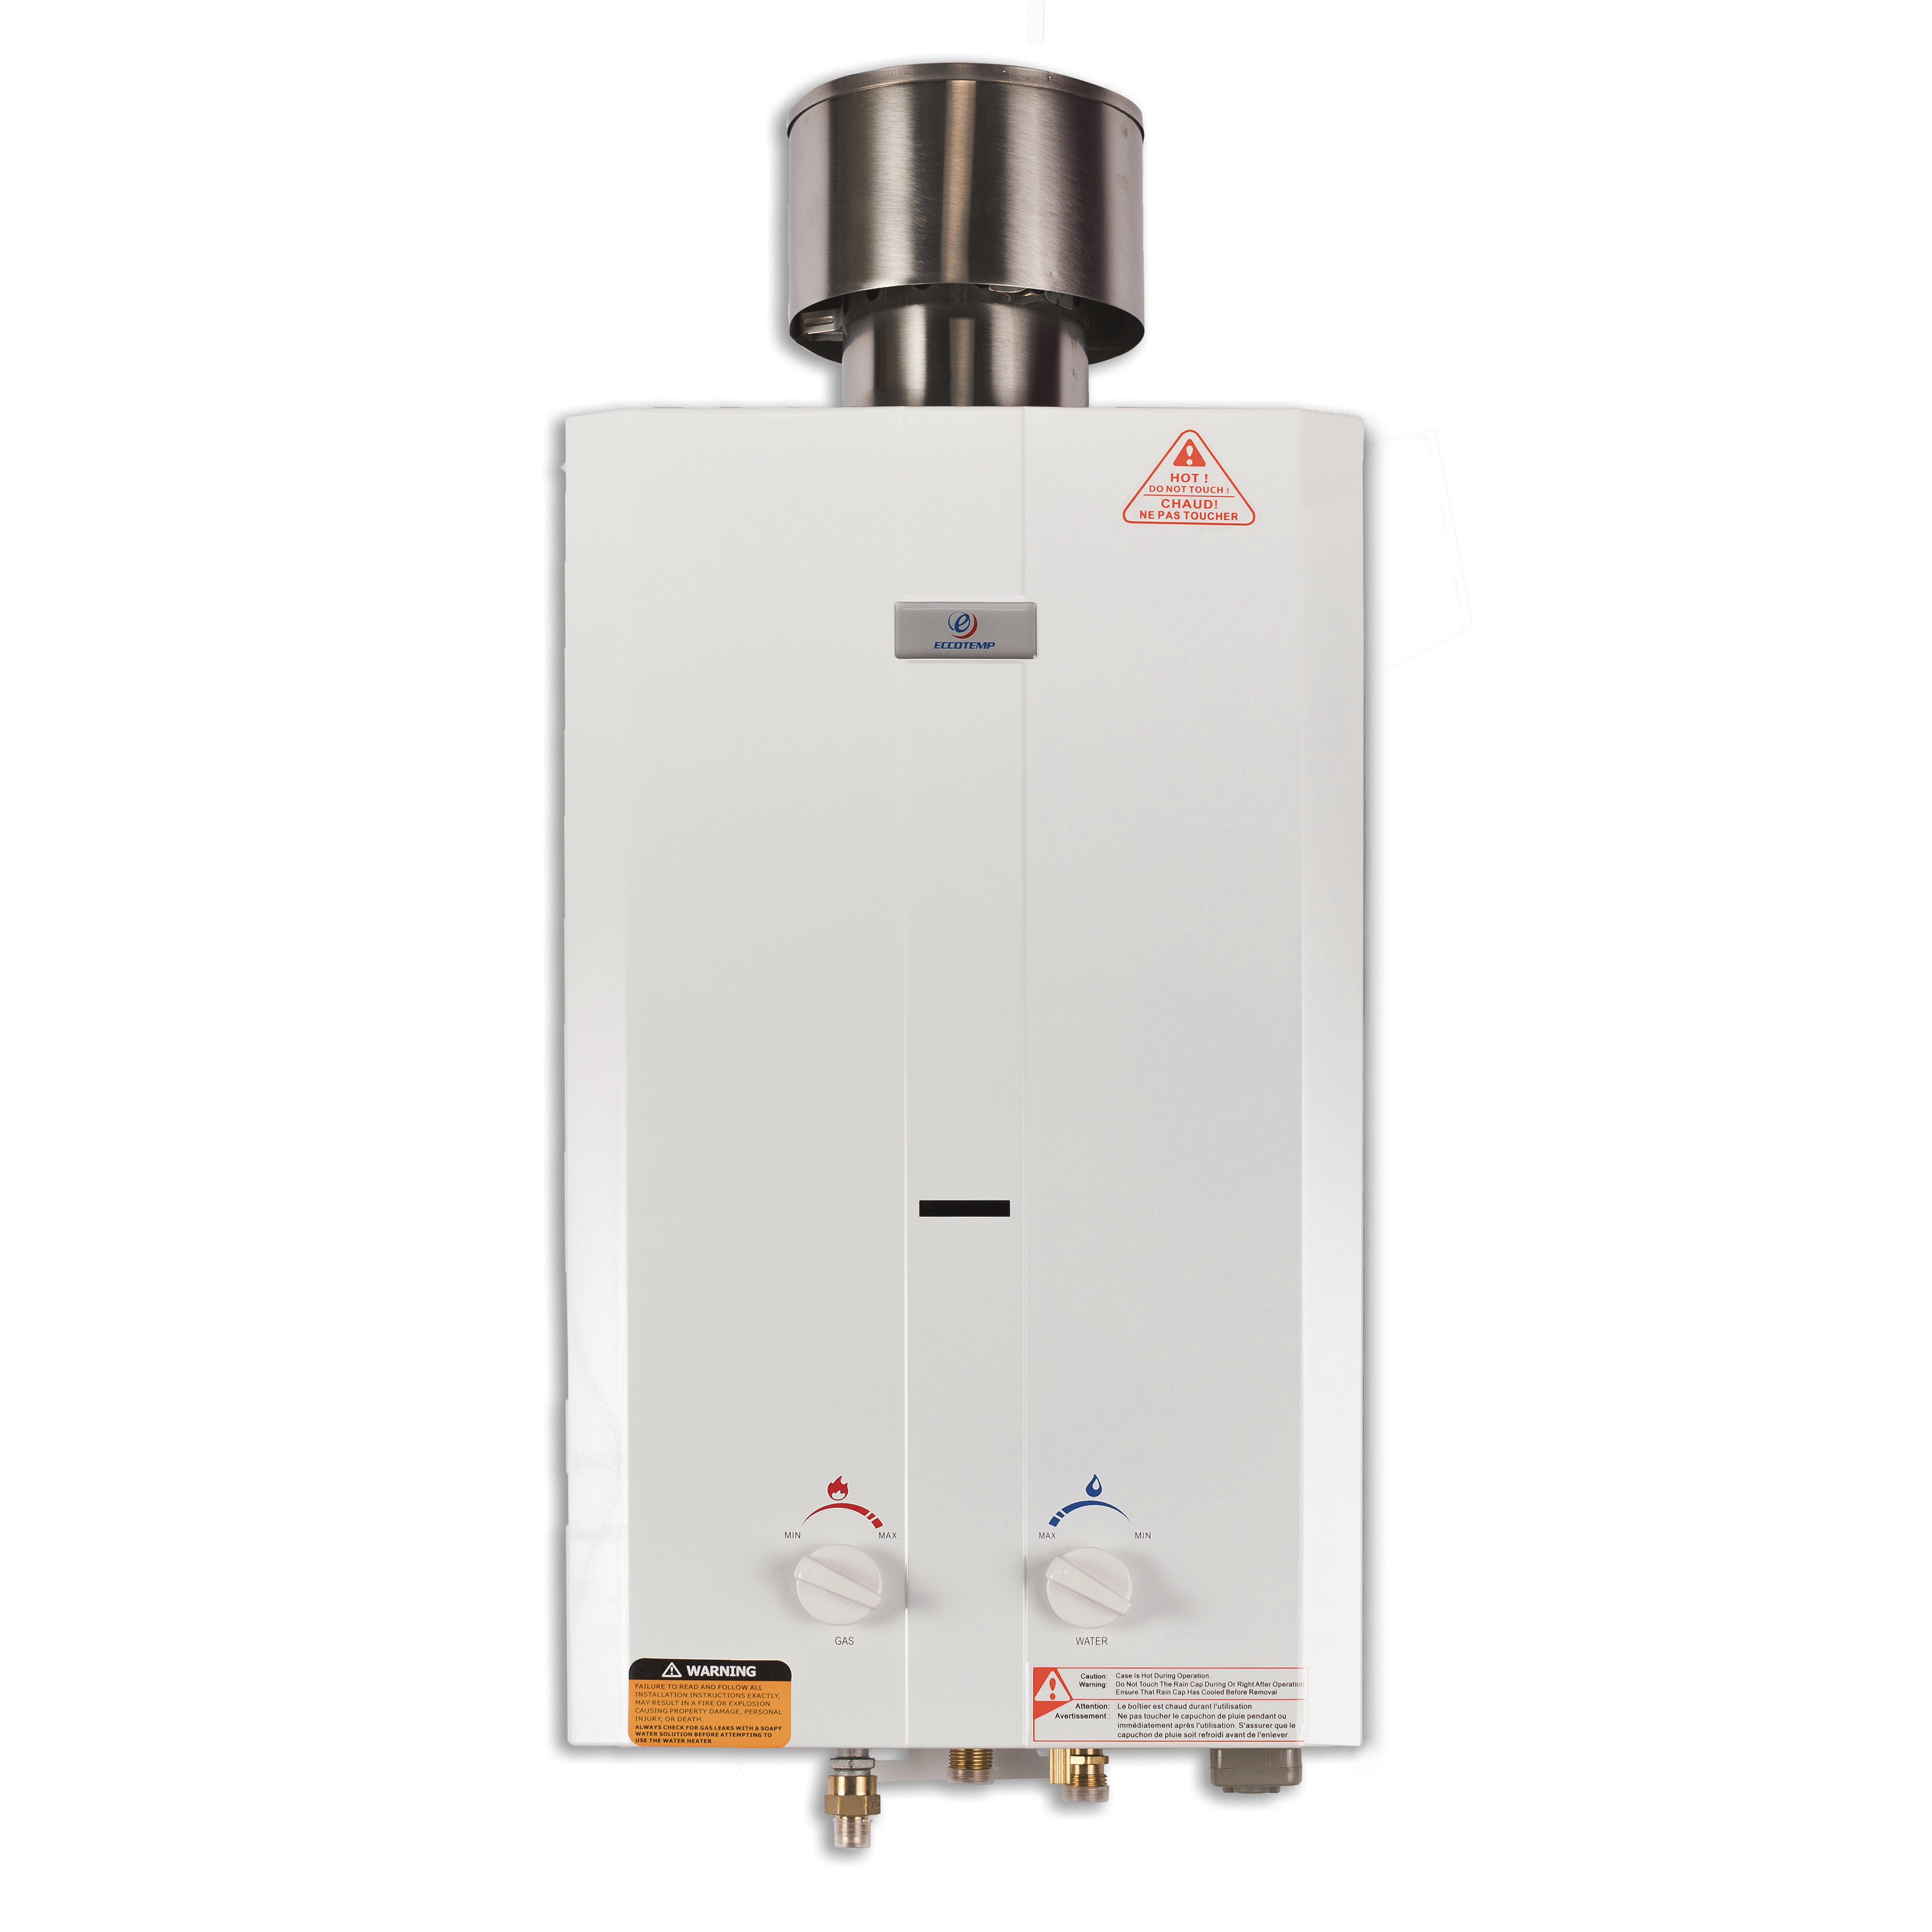 Eccotemp L10 2.6 GPM Portable Outdoor Tankless Water Heater